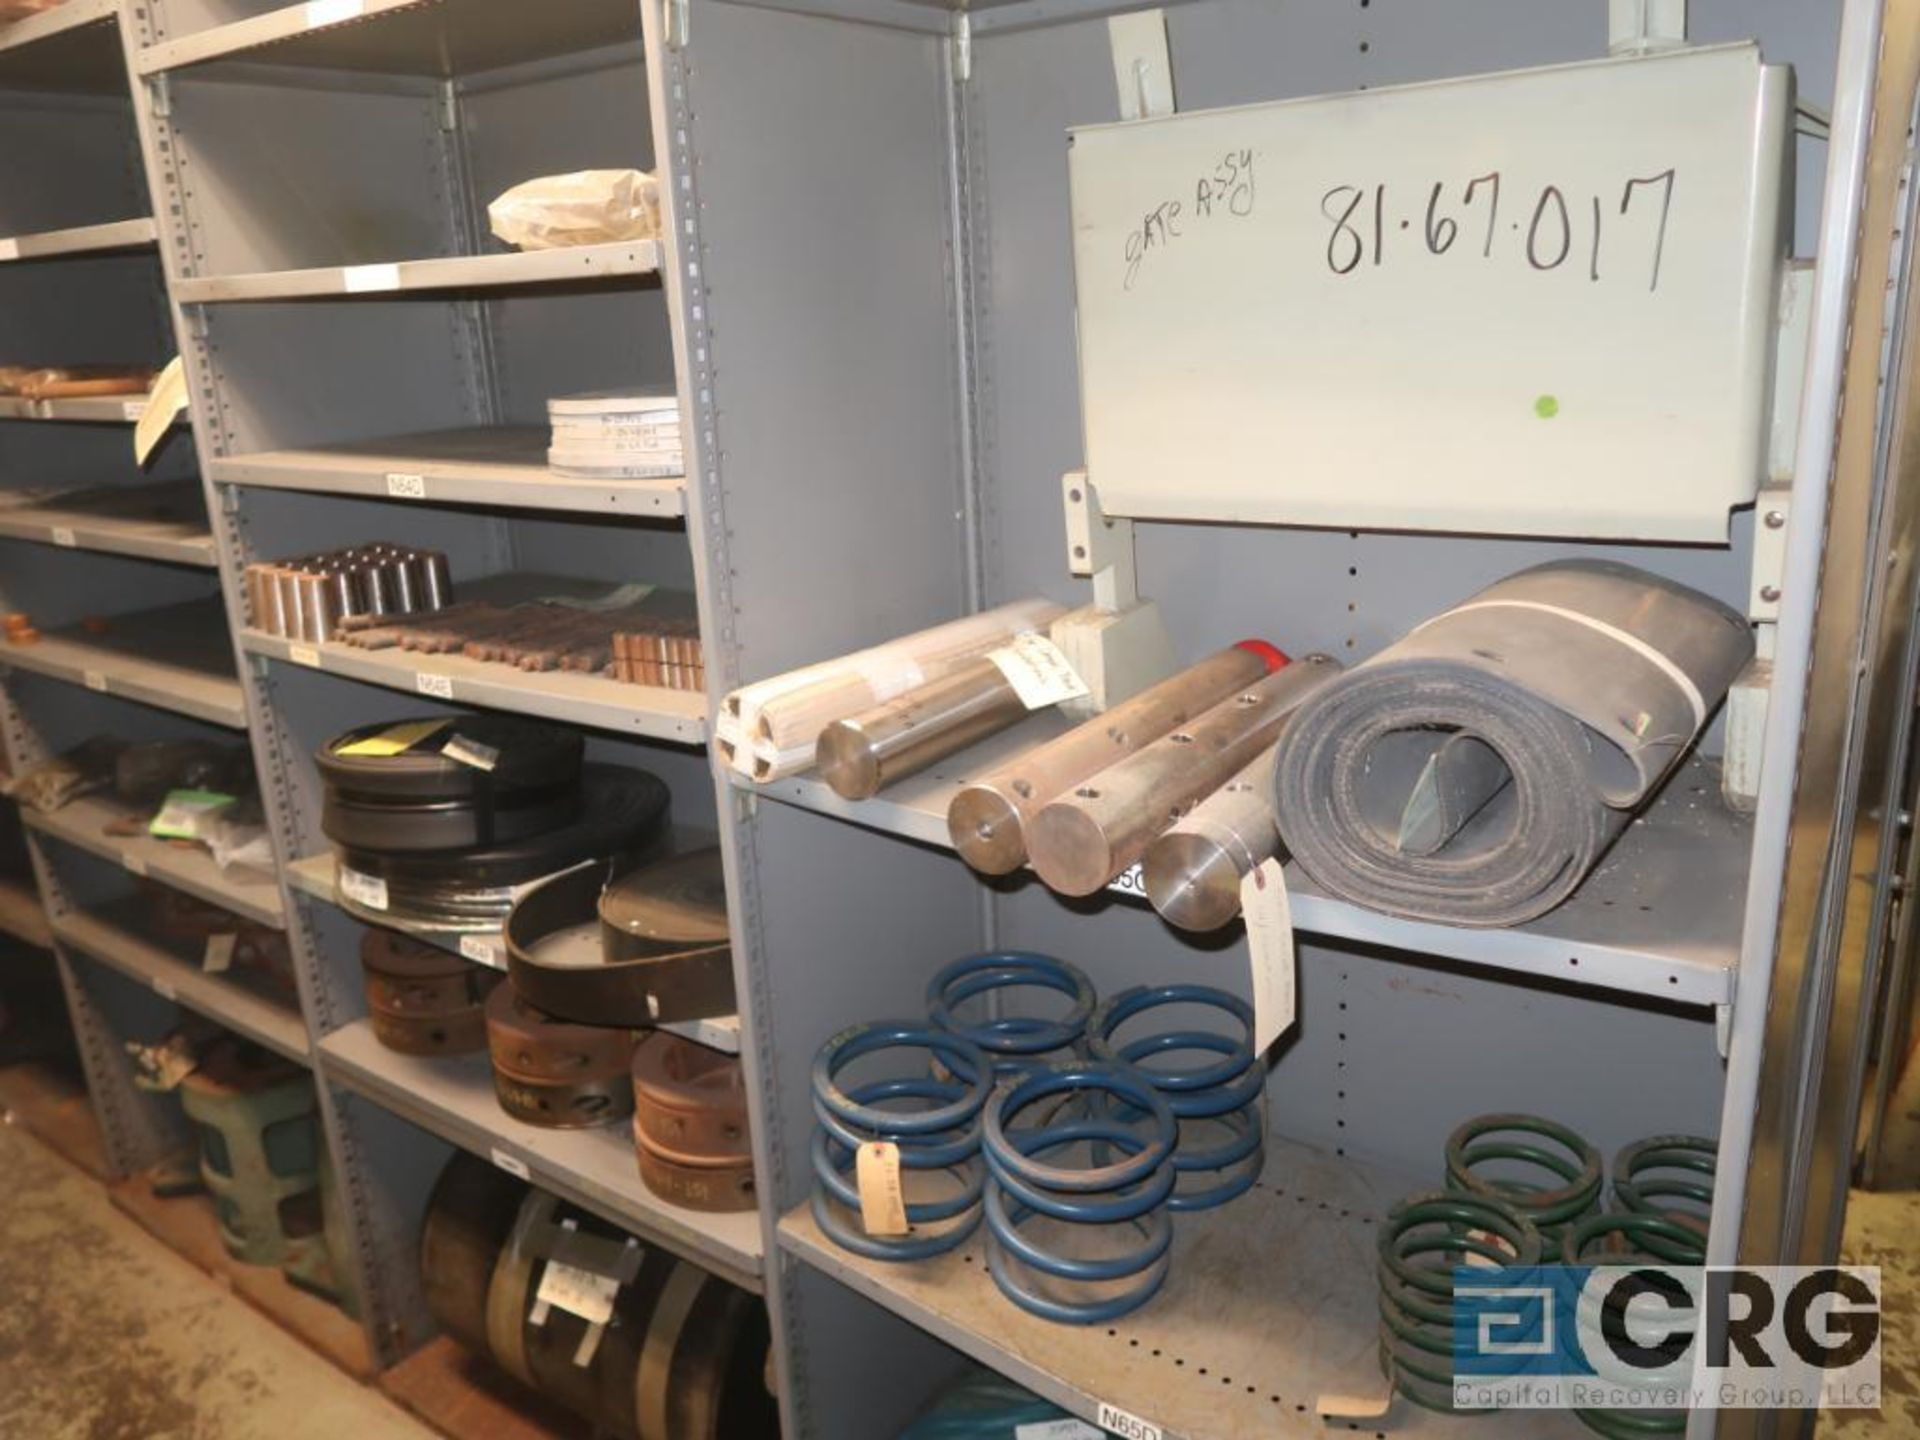 Lot of (35) sections with assorted parts including gaskets, fittings, shaft pins, gears, and - Image 16 of 17